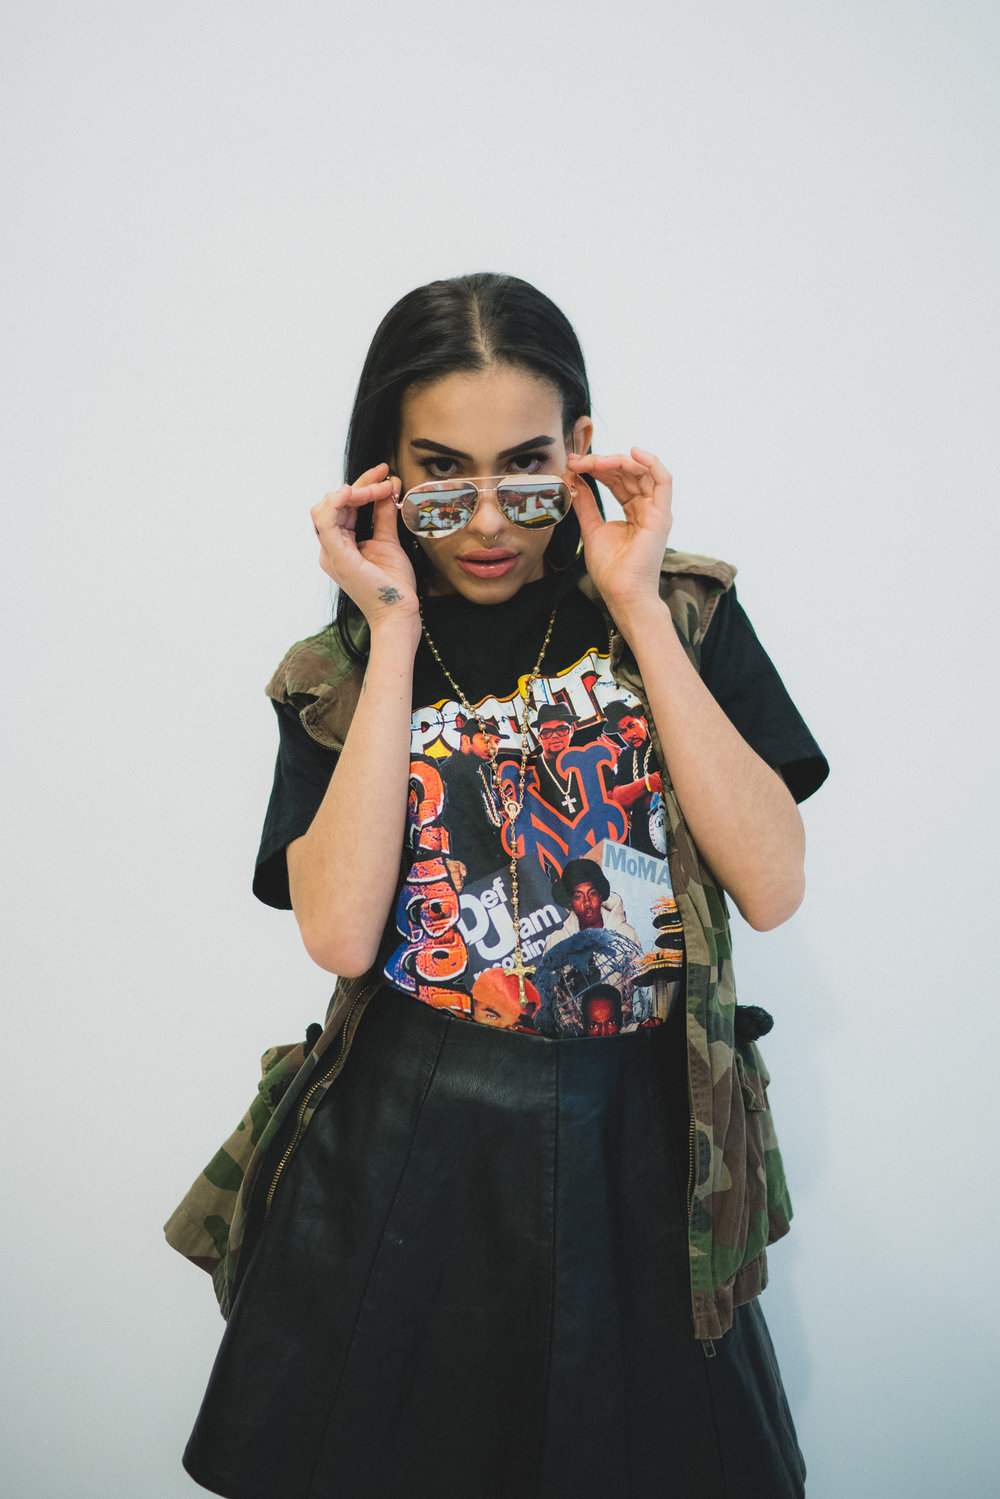 Model in BaskxQueens shirt